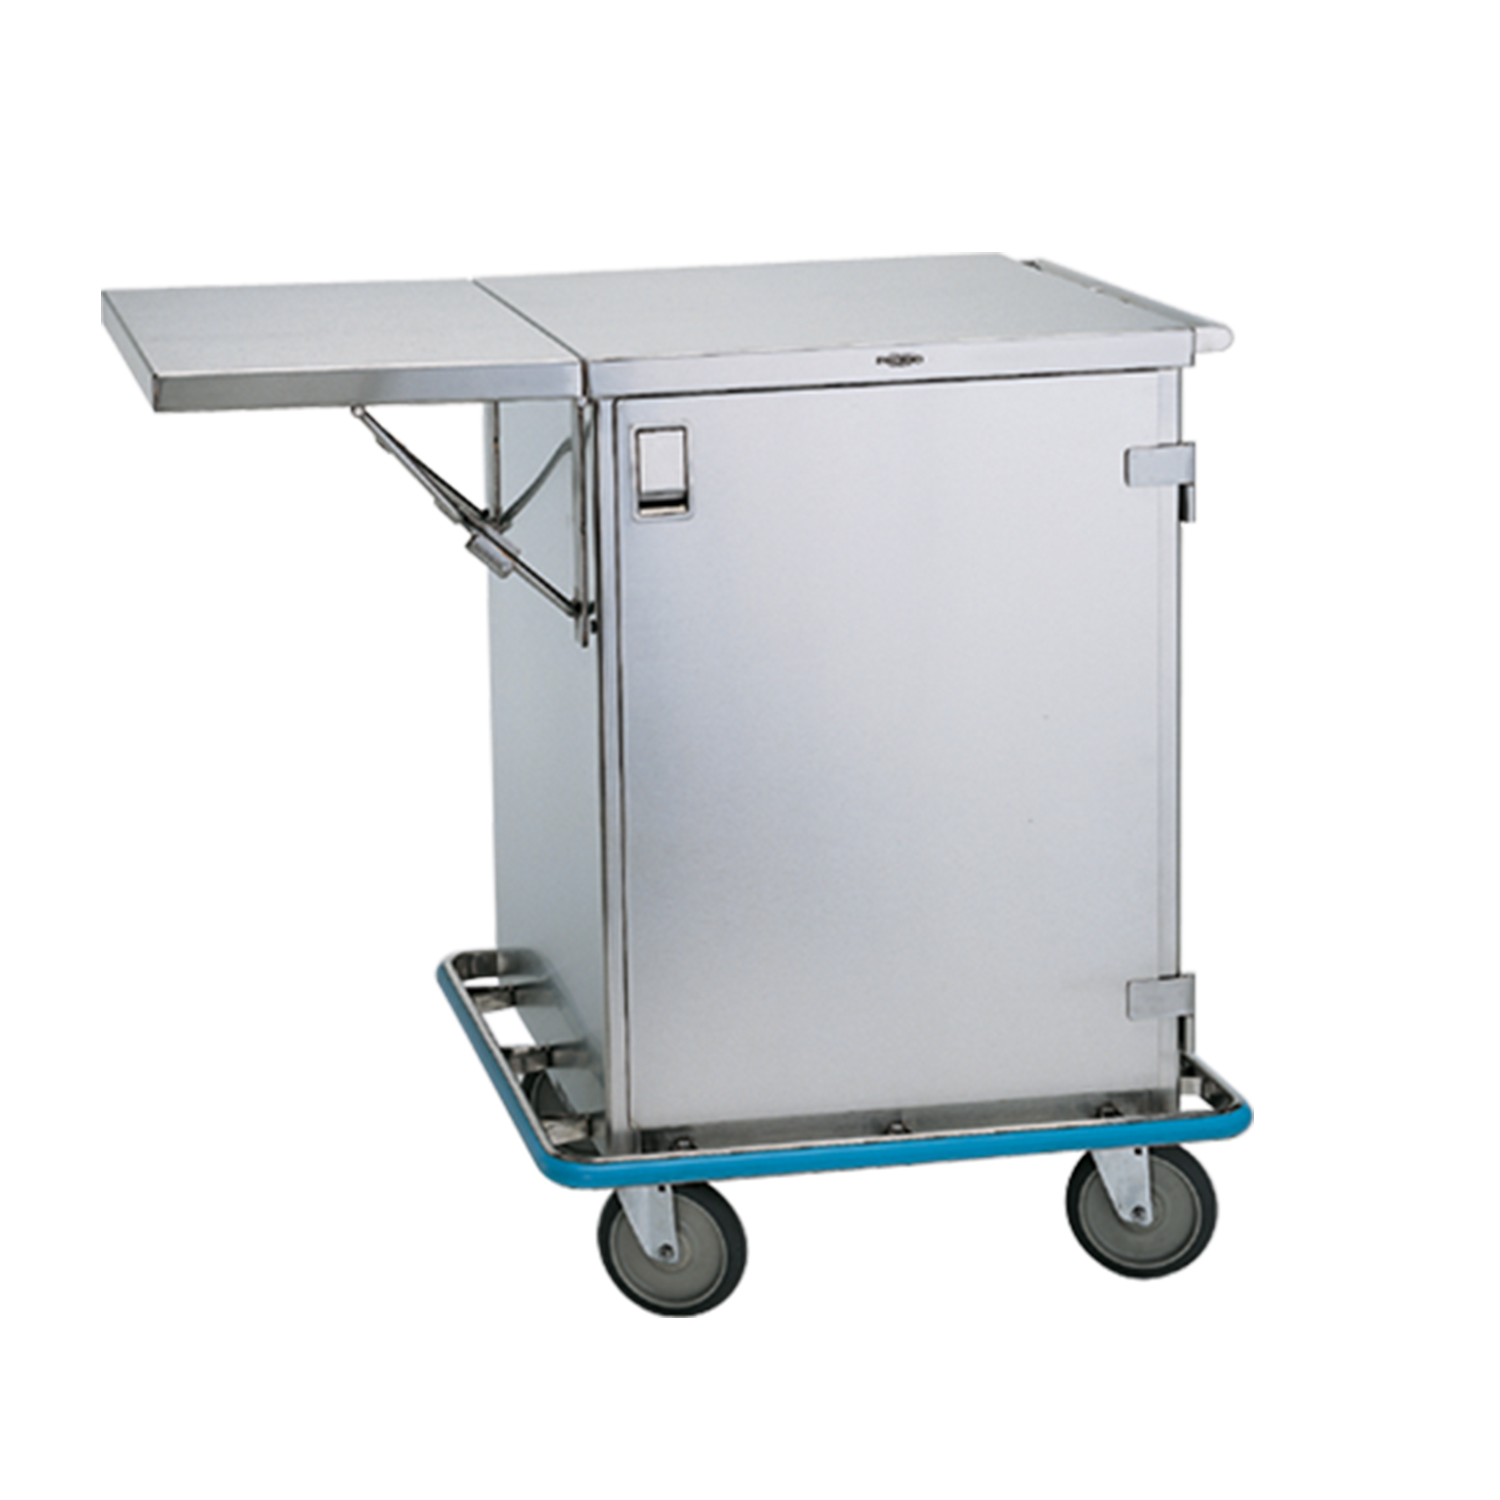 Pedigo CDS-256 Case Cart